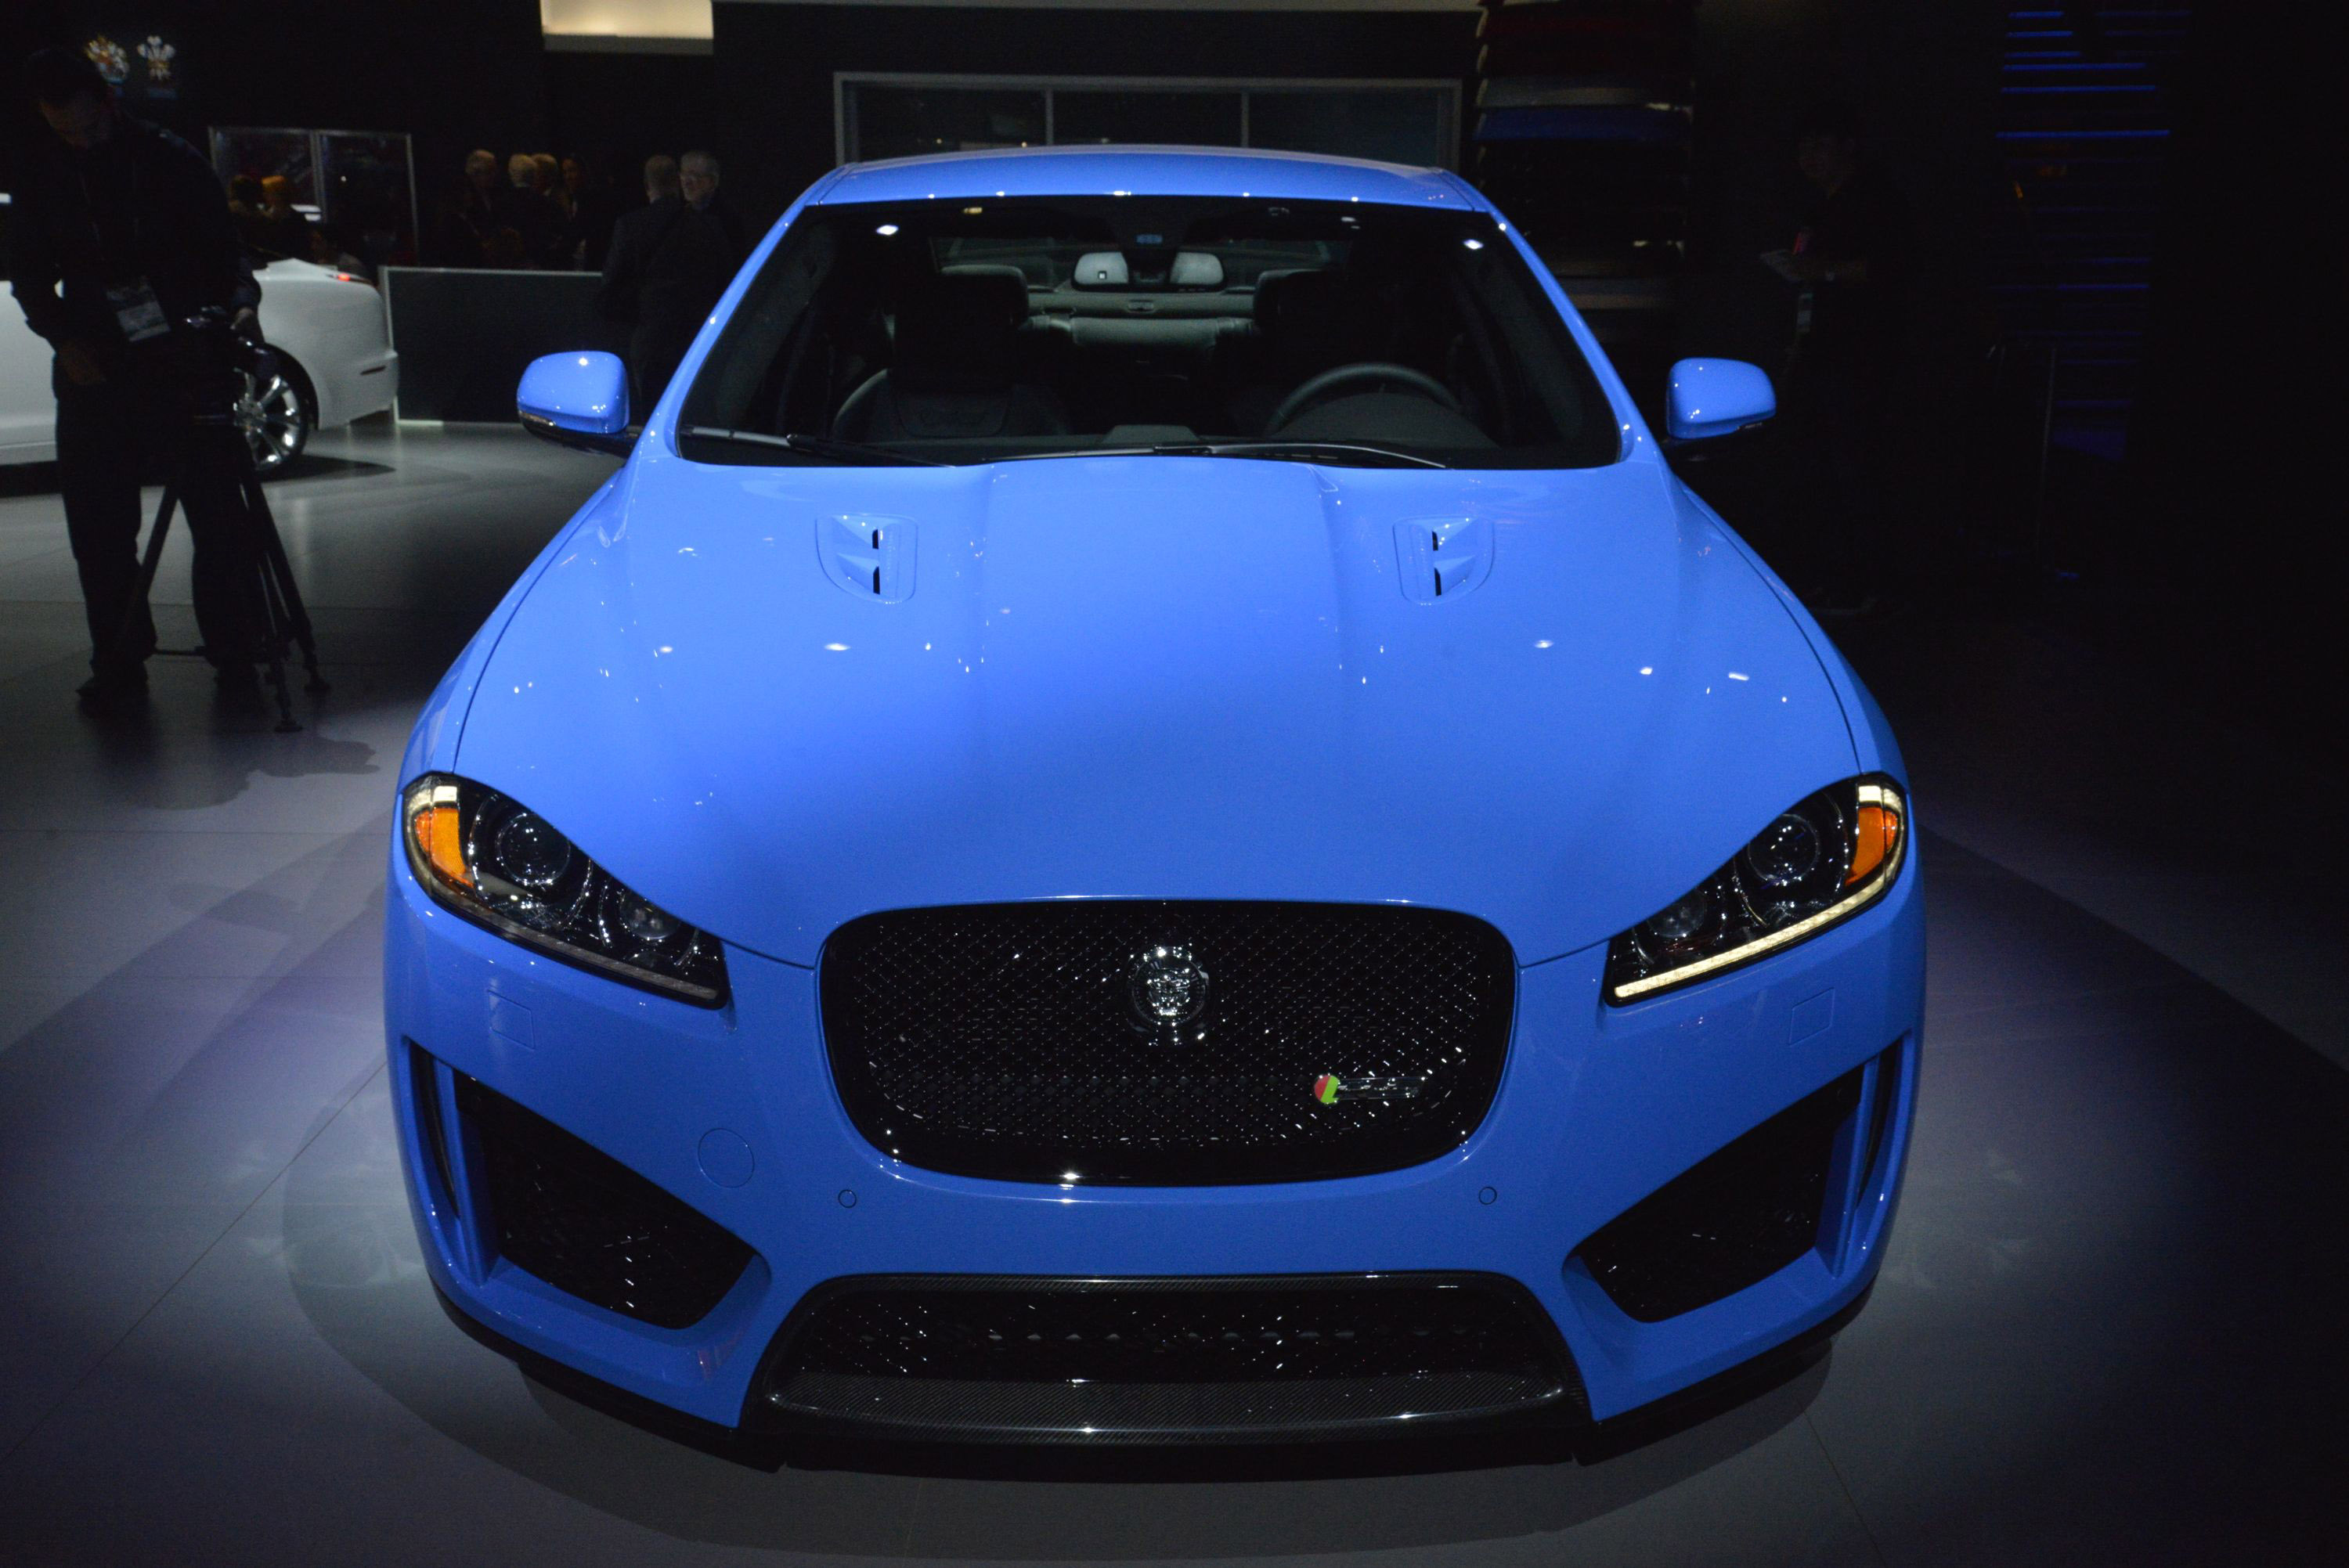 ev angeles waiting jaguar car photo s and pace feature photos info i original features is worth dealership a for the driver news los f